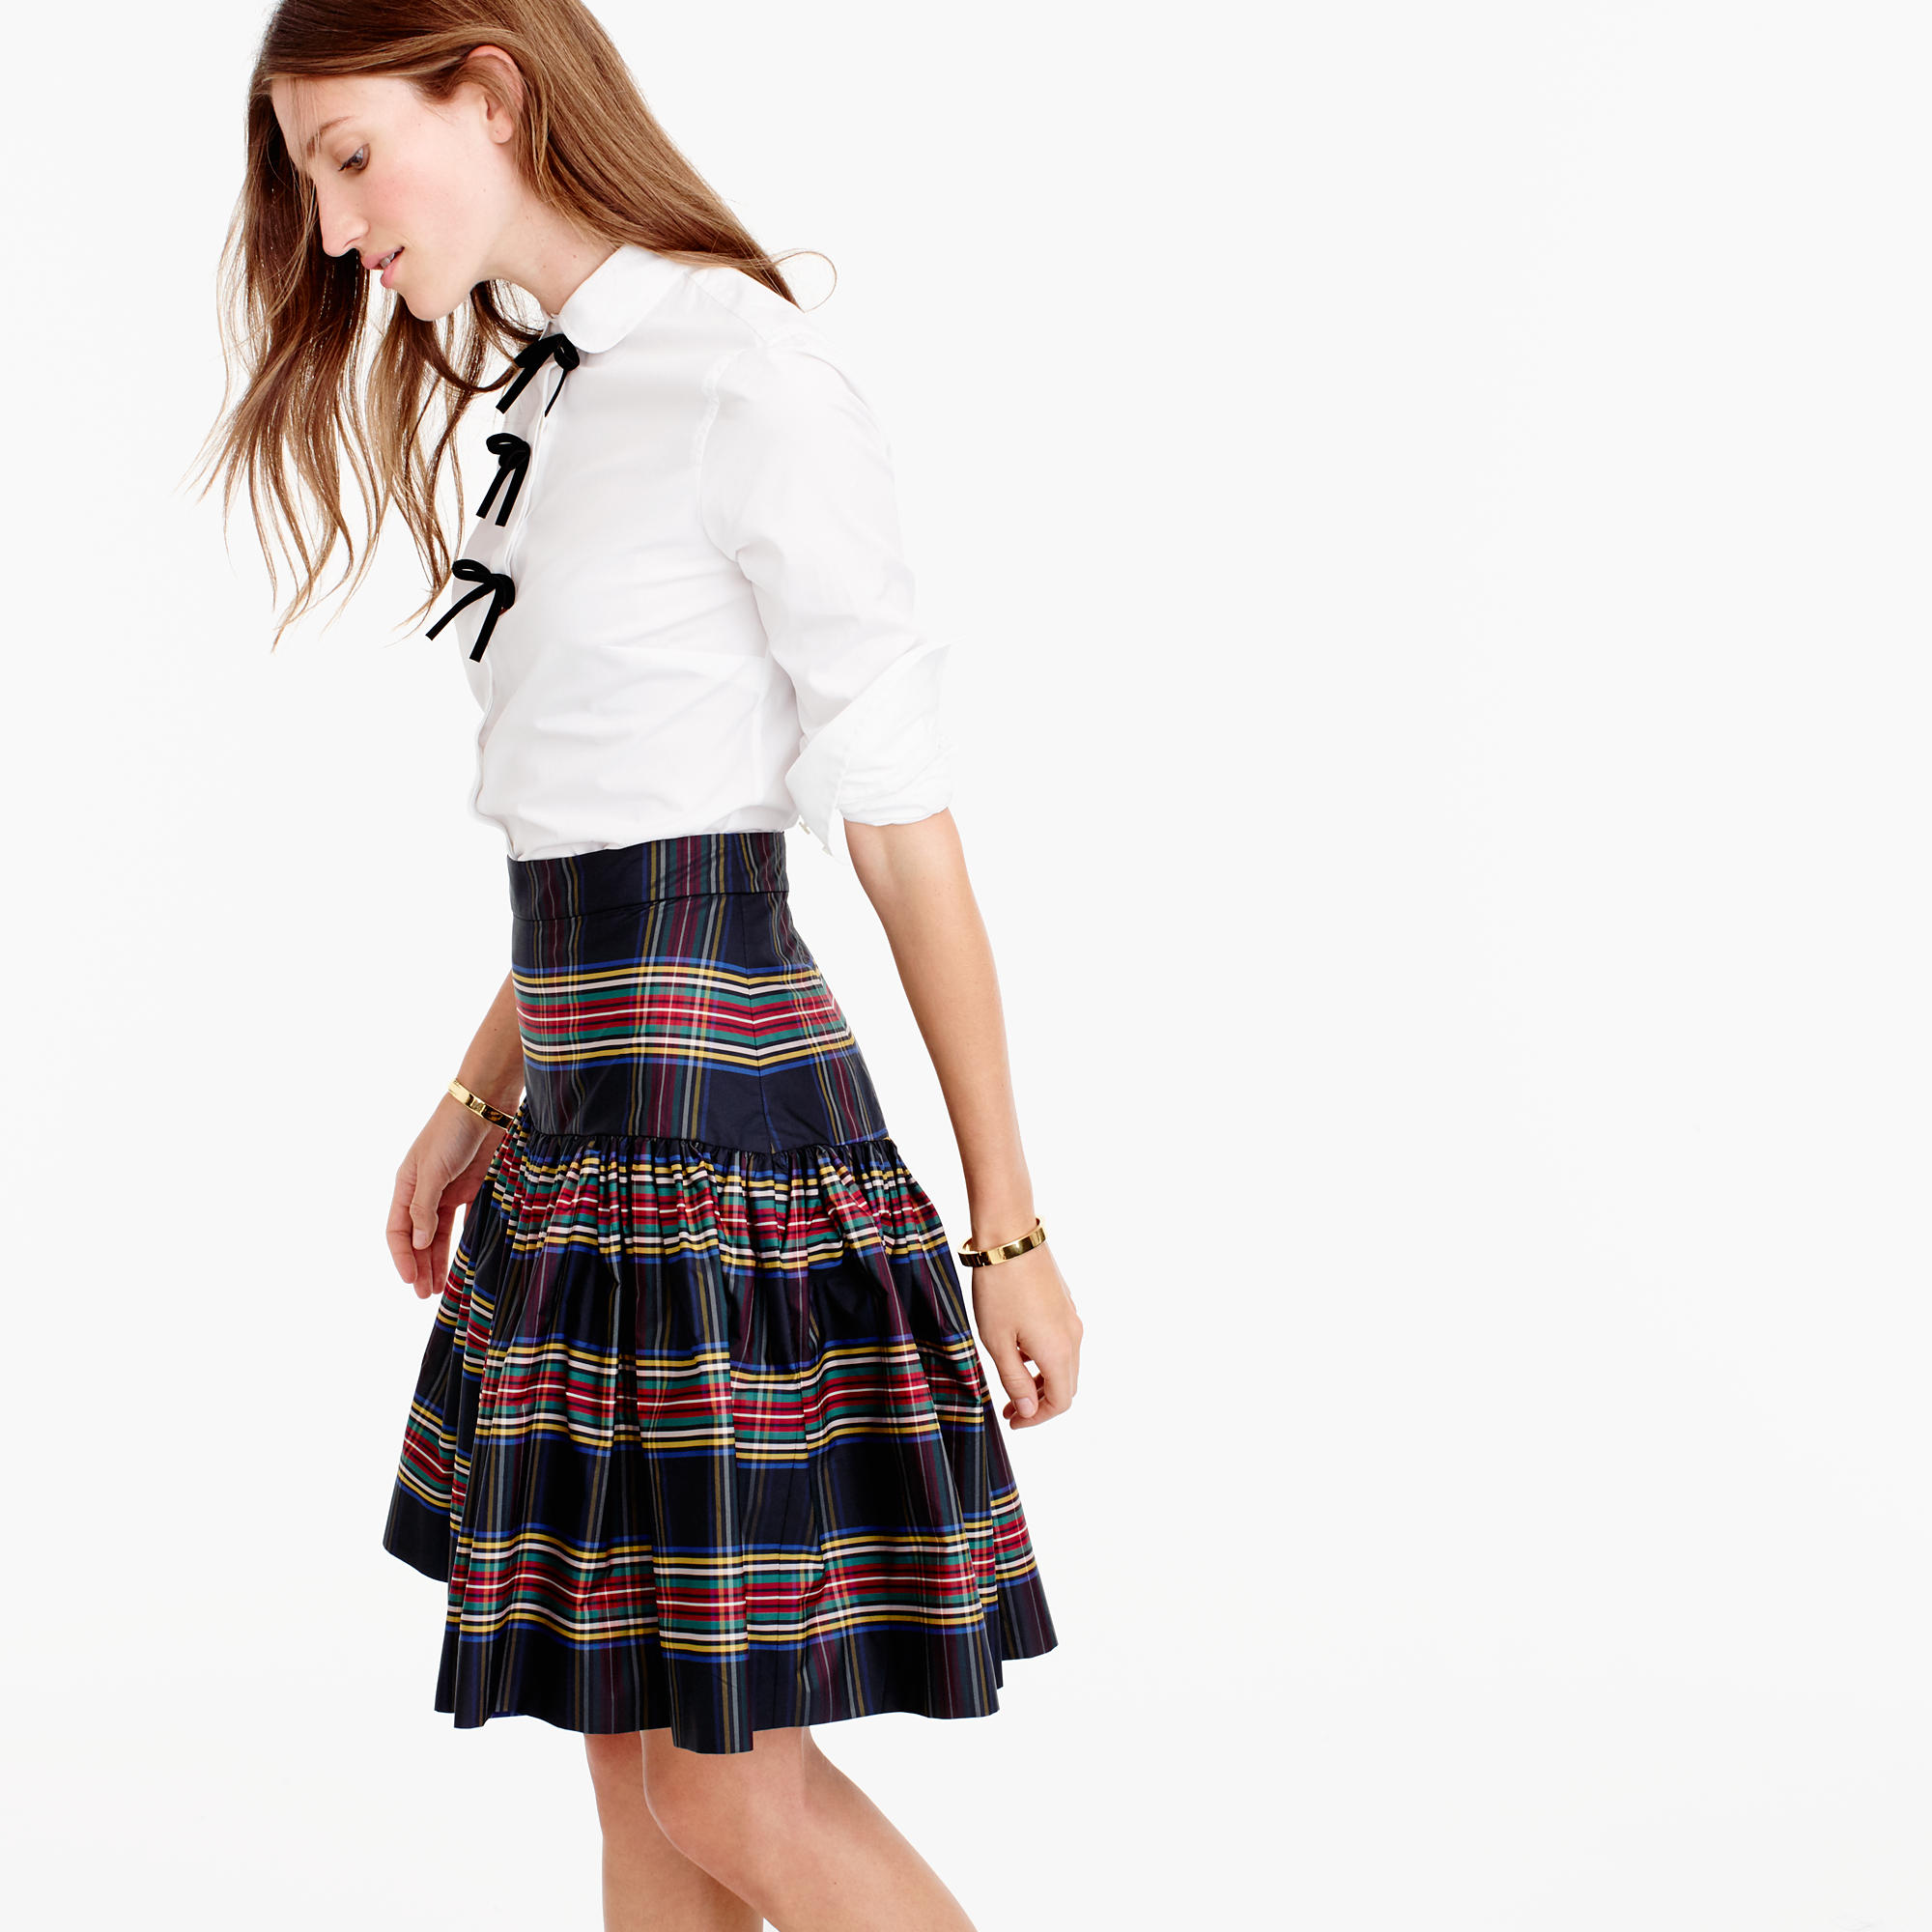 Petite Taffeta Skirt In Stewart Plaid : Women's Skirts | J.Crew